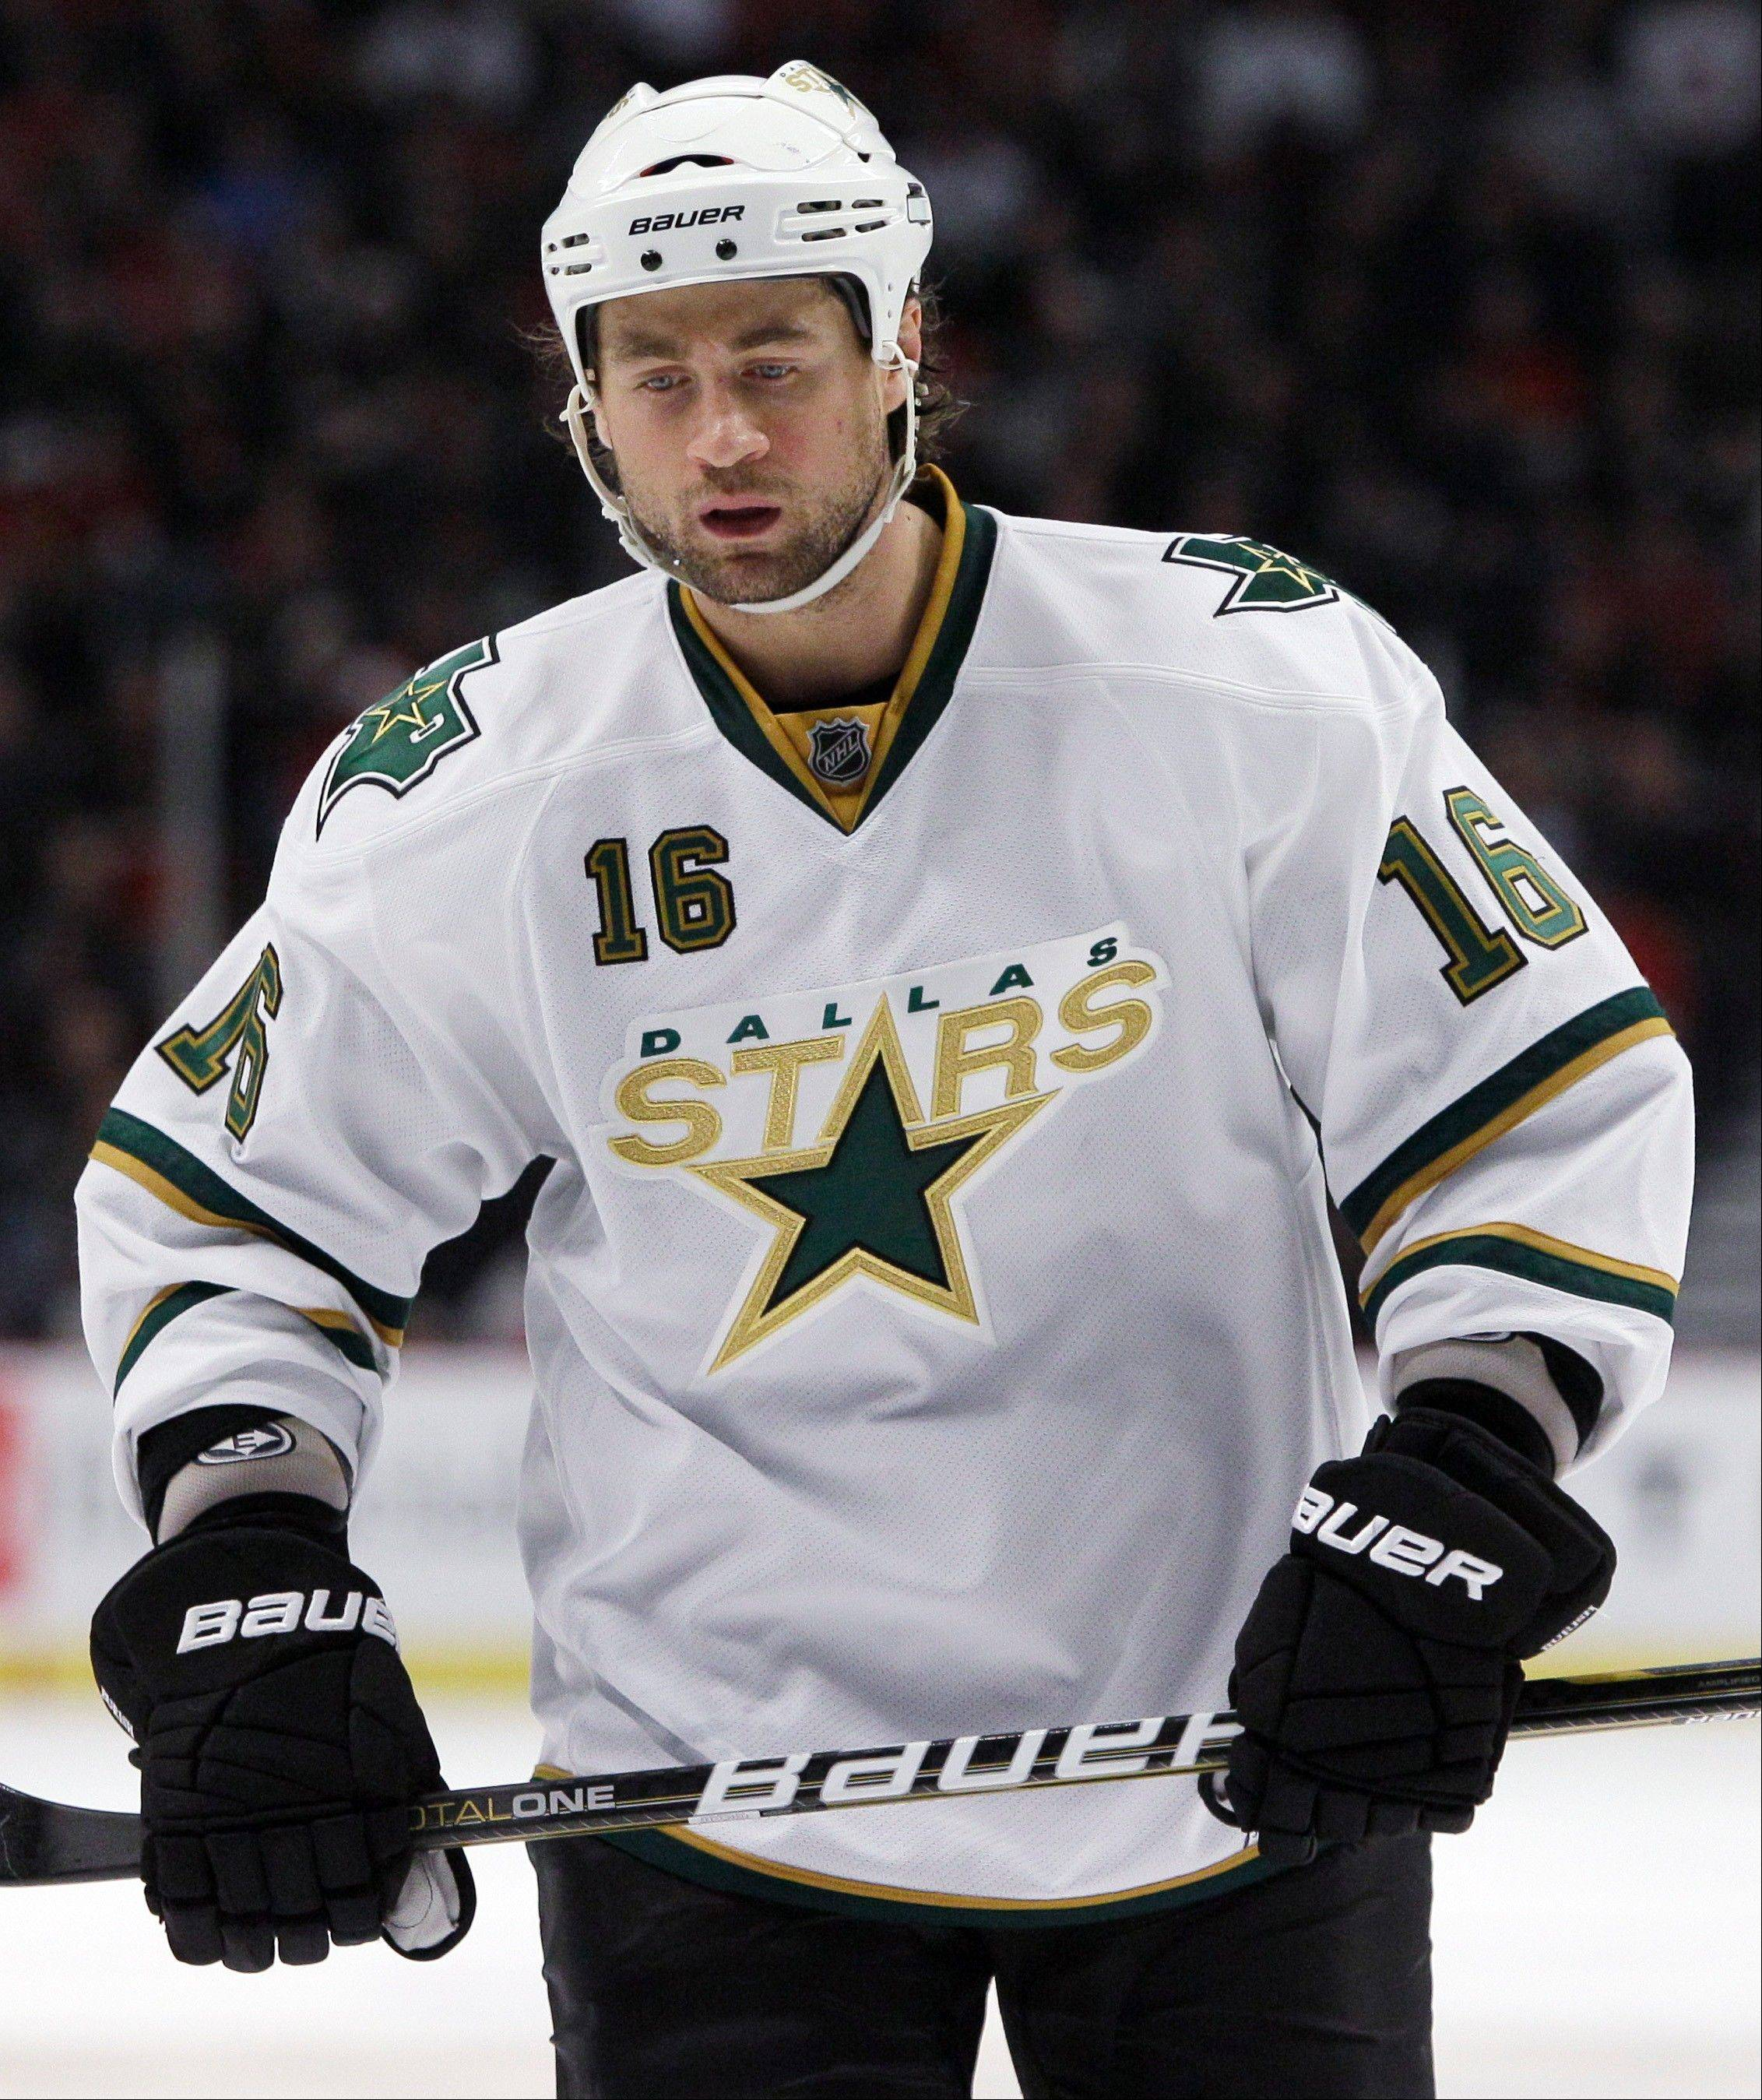 With the NHL lockout dragging on, Adam Burish (above) decided to ask a few of his friends to get together for a charity hockey game. Friday at Allstate Arena, many members of the 2010 Blackhawks Stanley Cup champions will reunite to play an exhibition against other NHL stars.